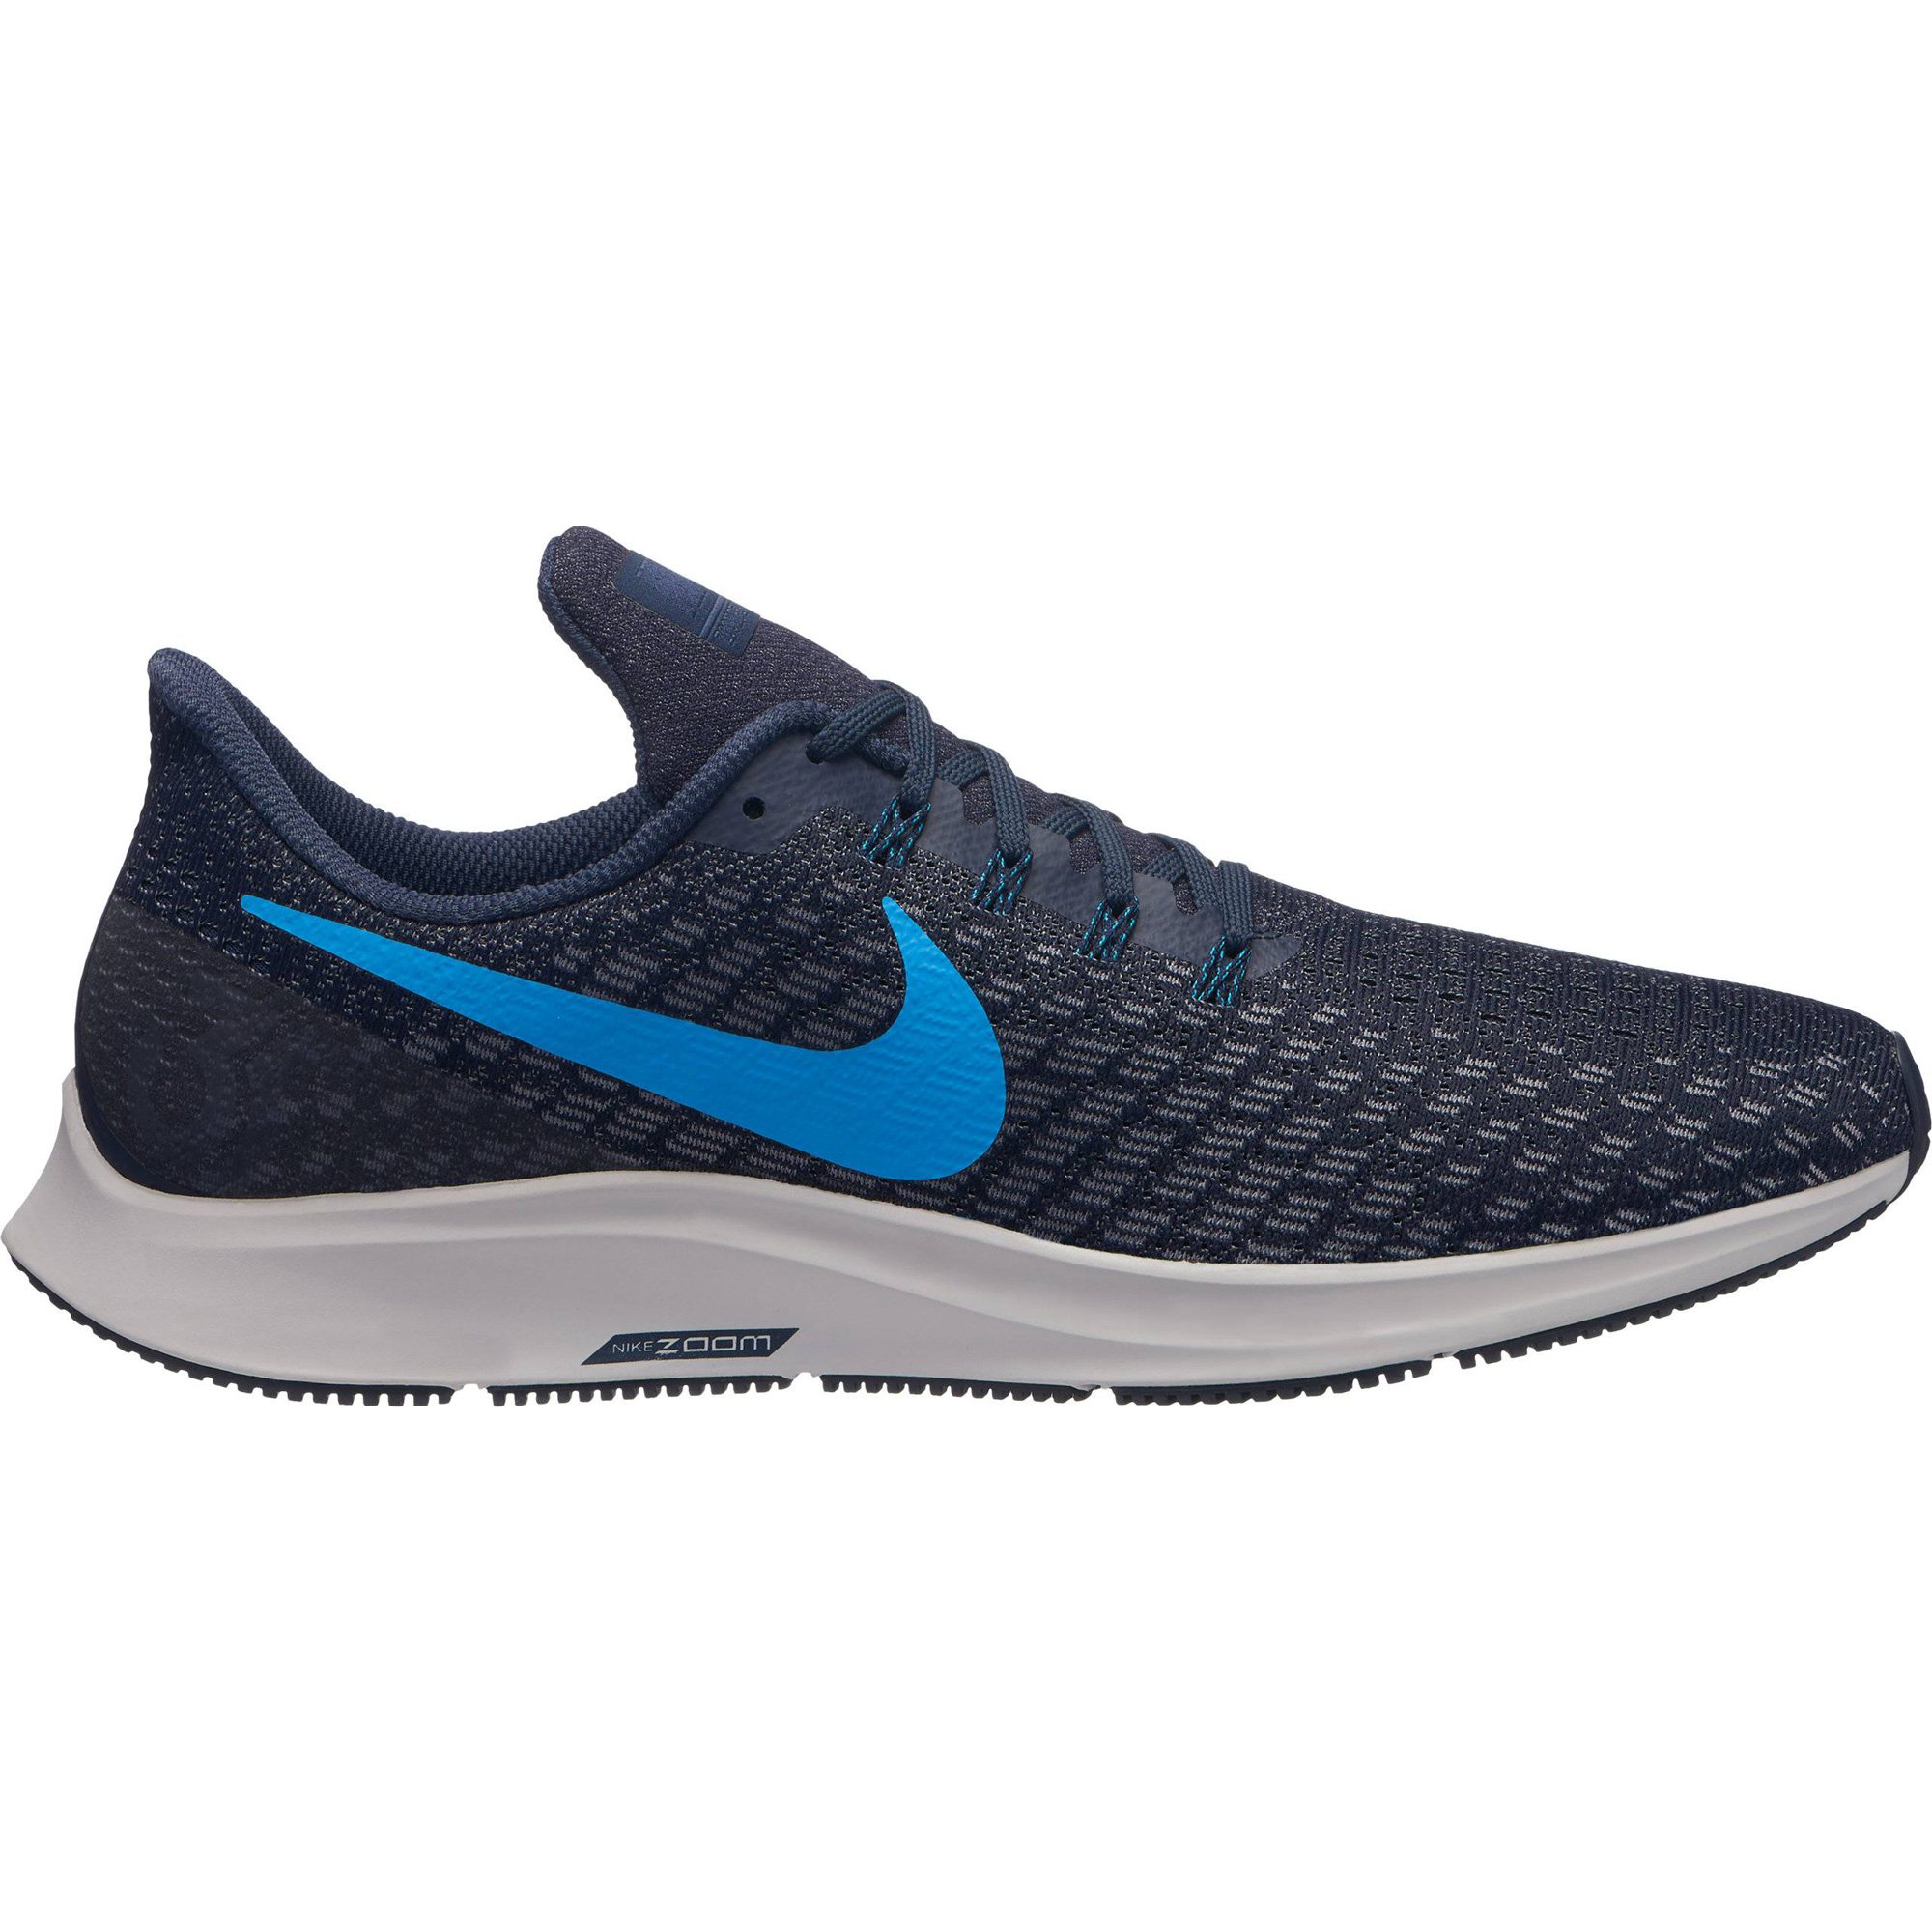 various colors free delivery new specials Nike Air Zoom Pegasus 35 - Herren Laufschuhe Running Schuhe - 942851-401  dunkelblau